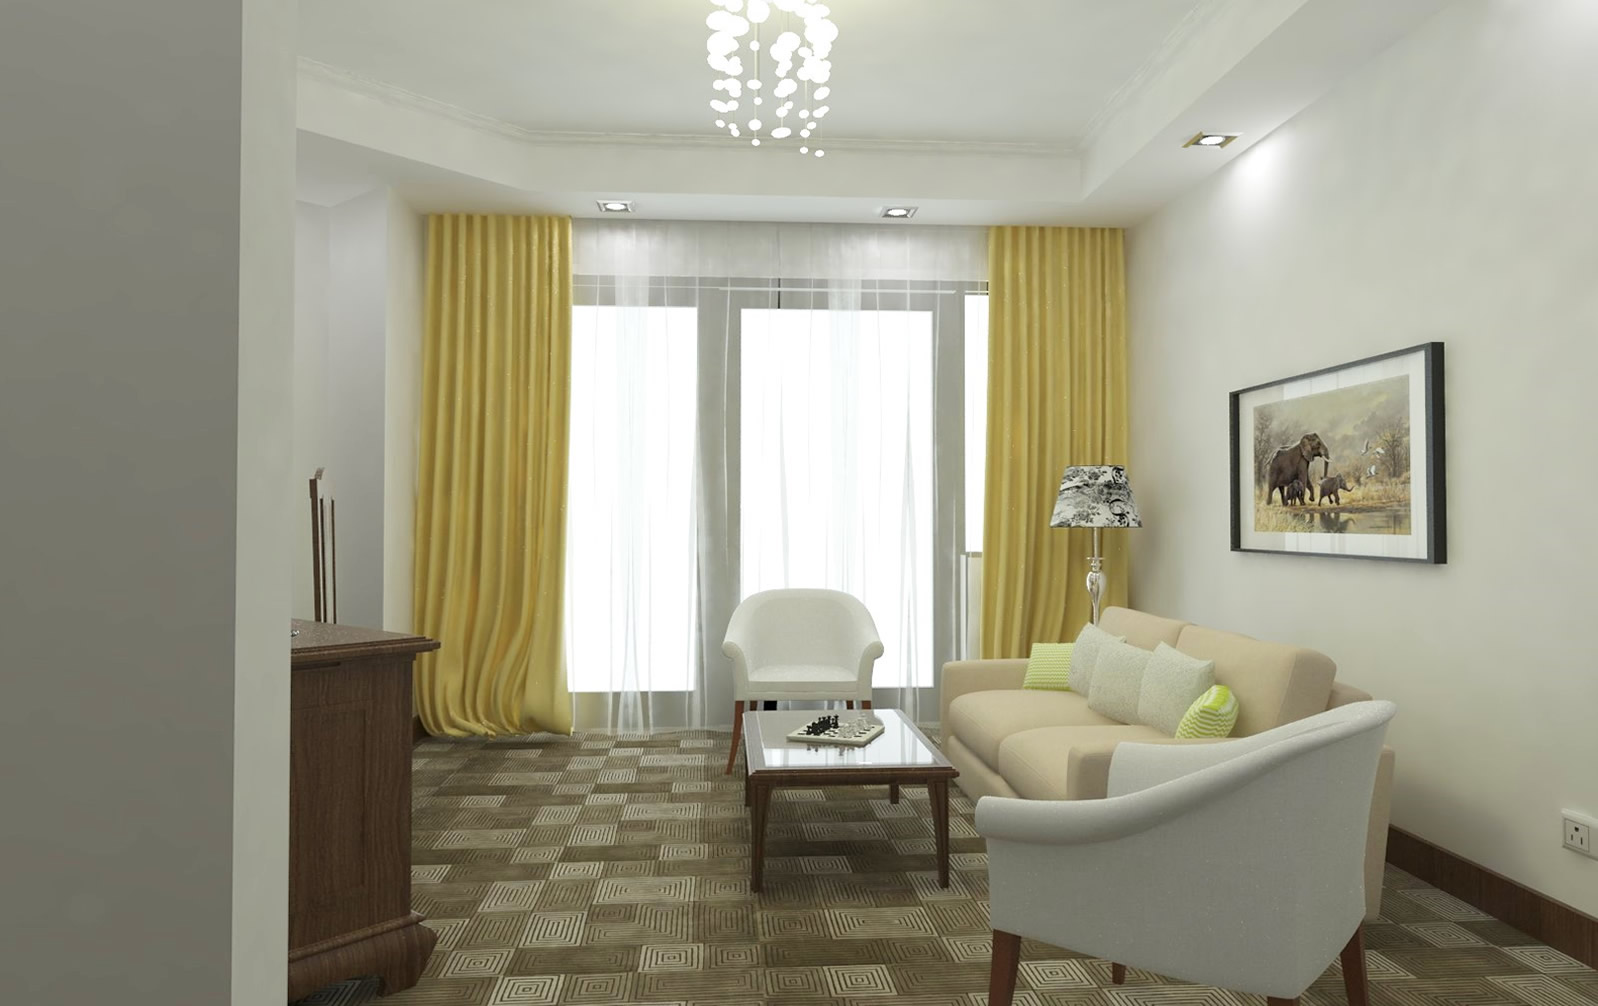 inhouse interior design services in nairobi kenya east africainterior furnishing and fit out servicesdesign and build home - Inhouse Interior Design